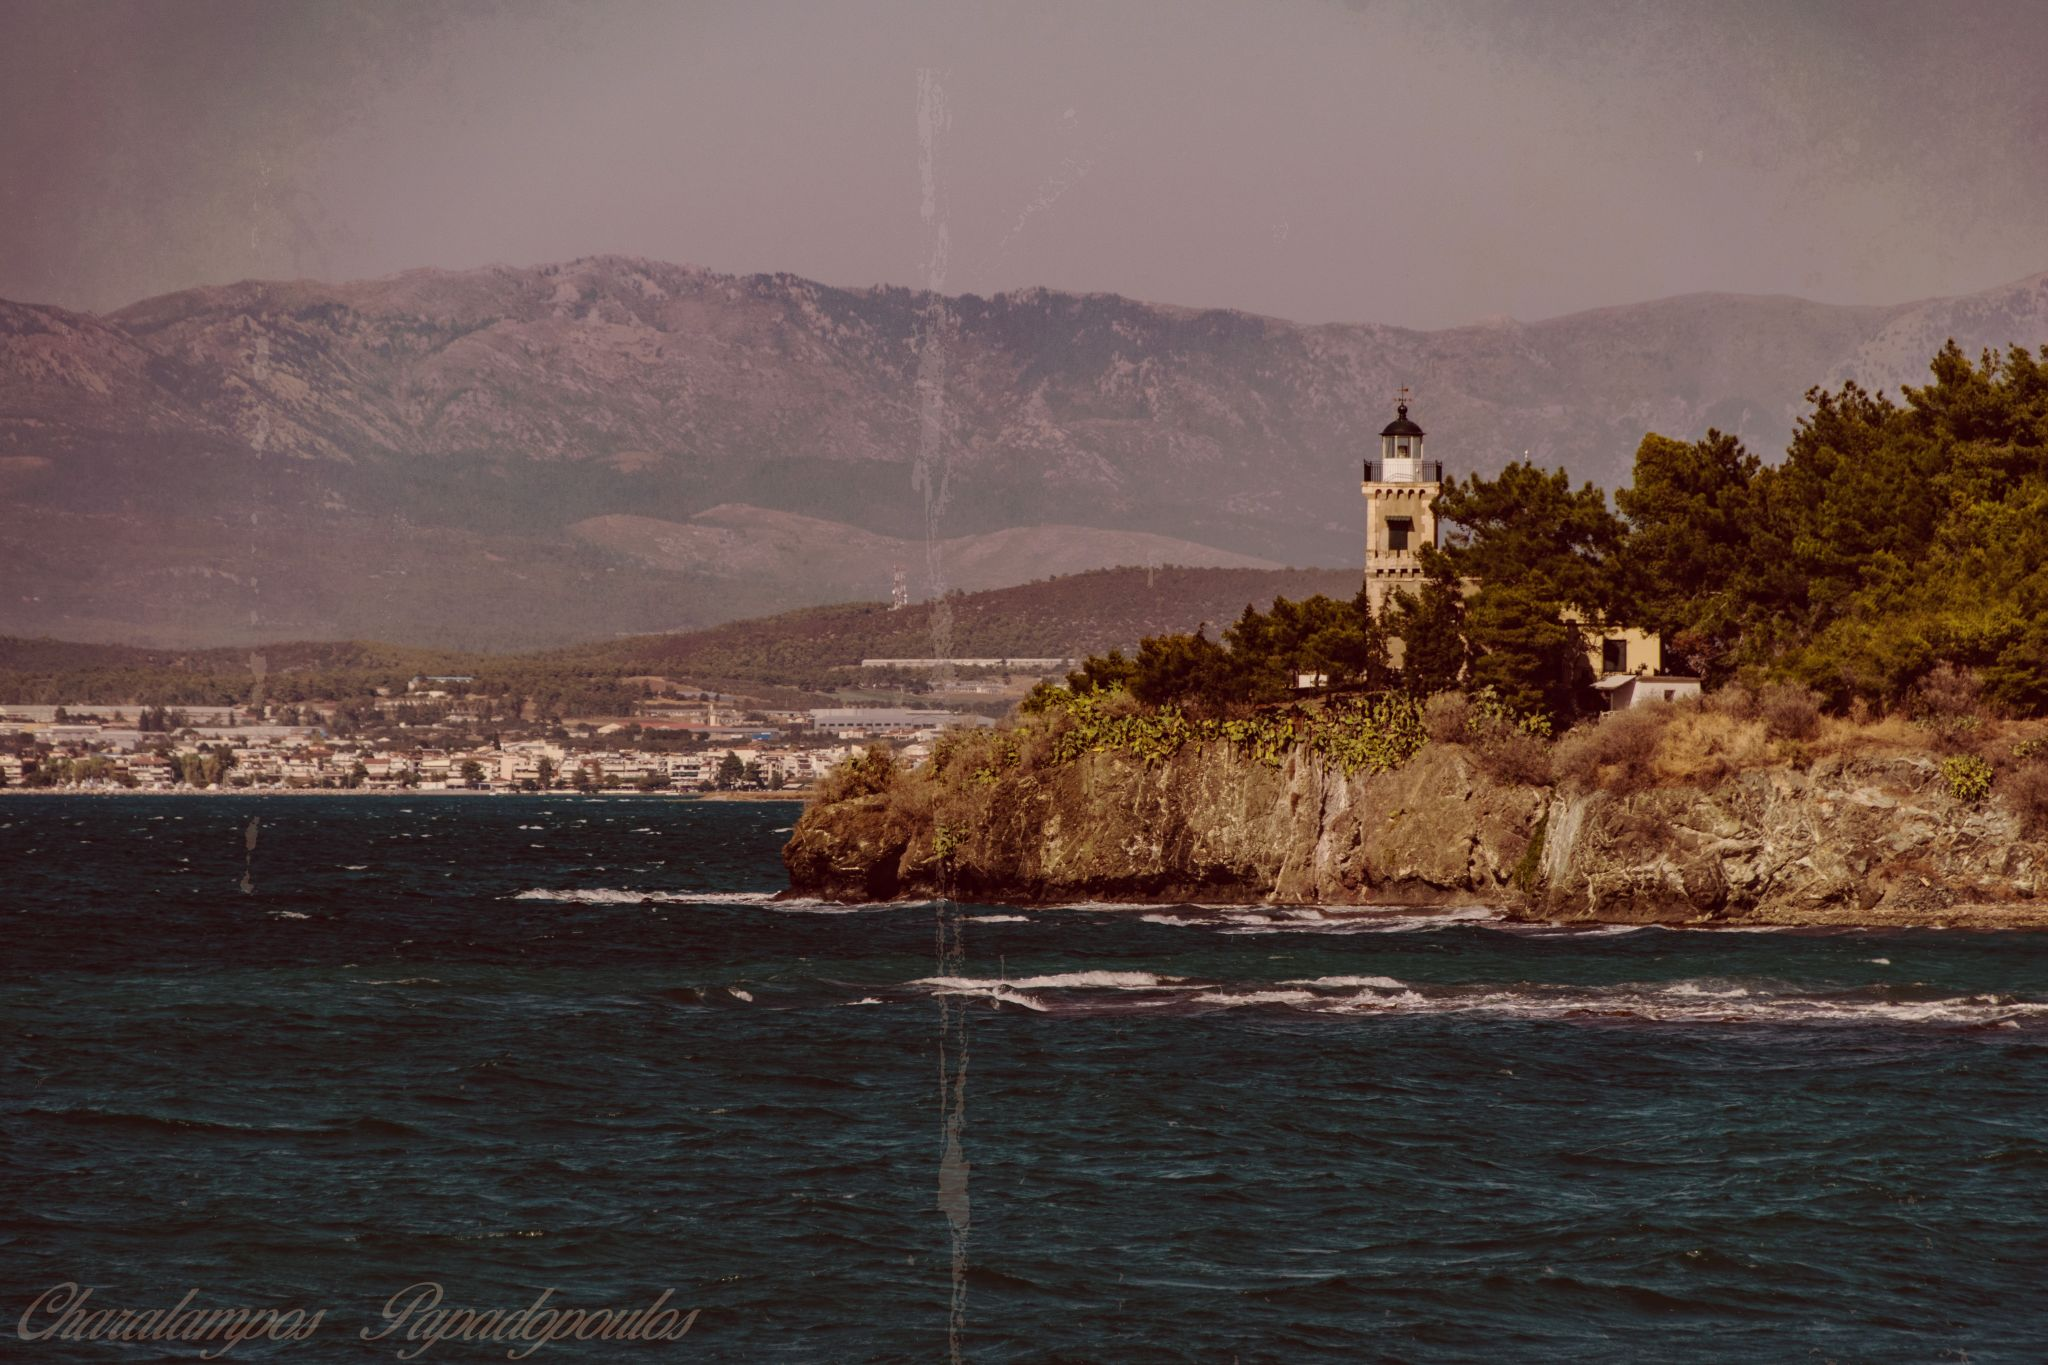 Chalkis LightHouse, Greece